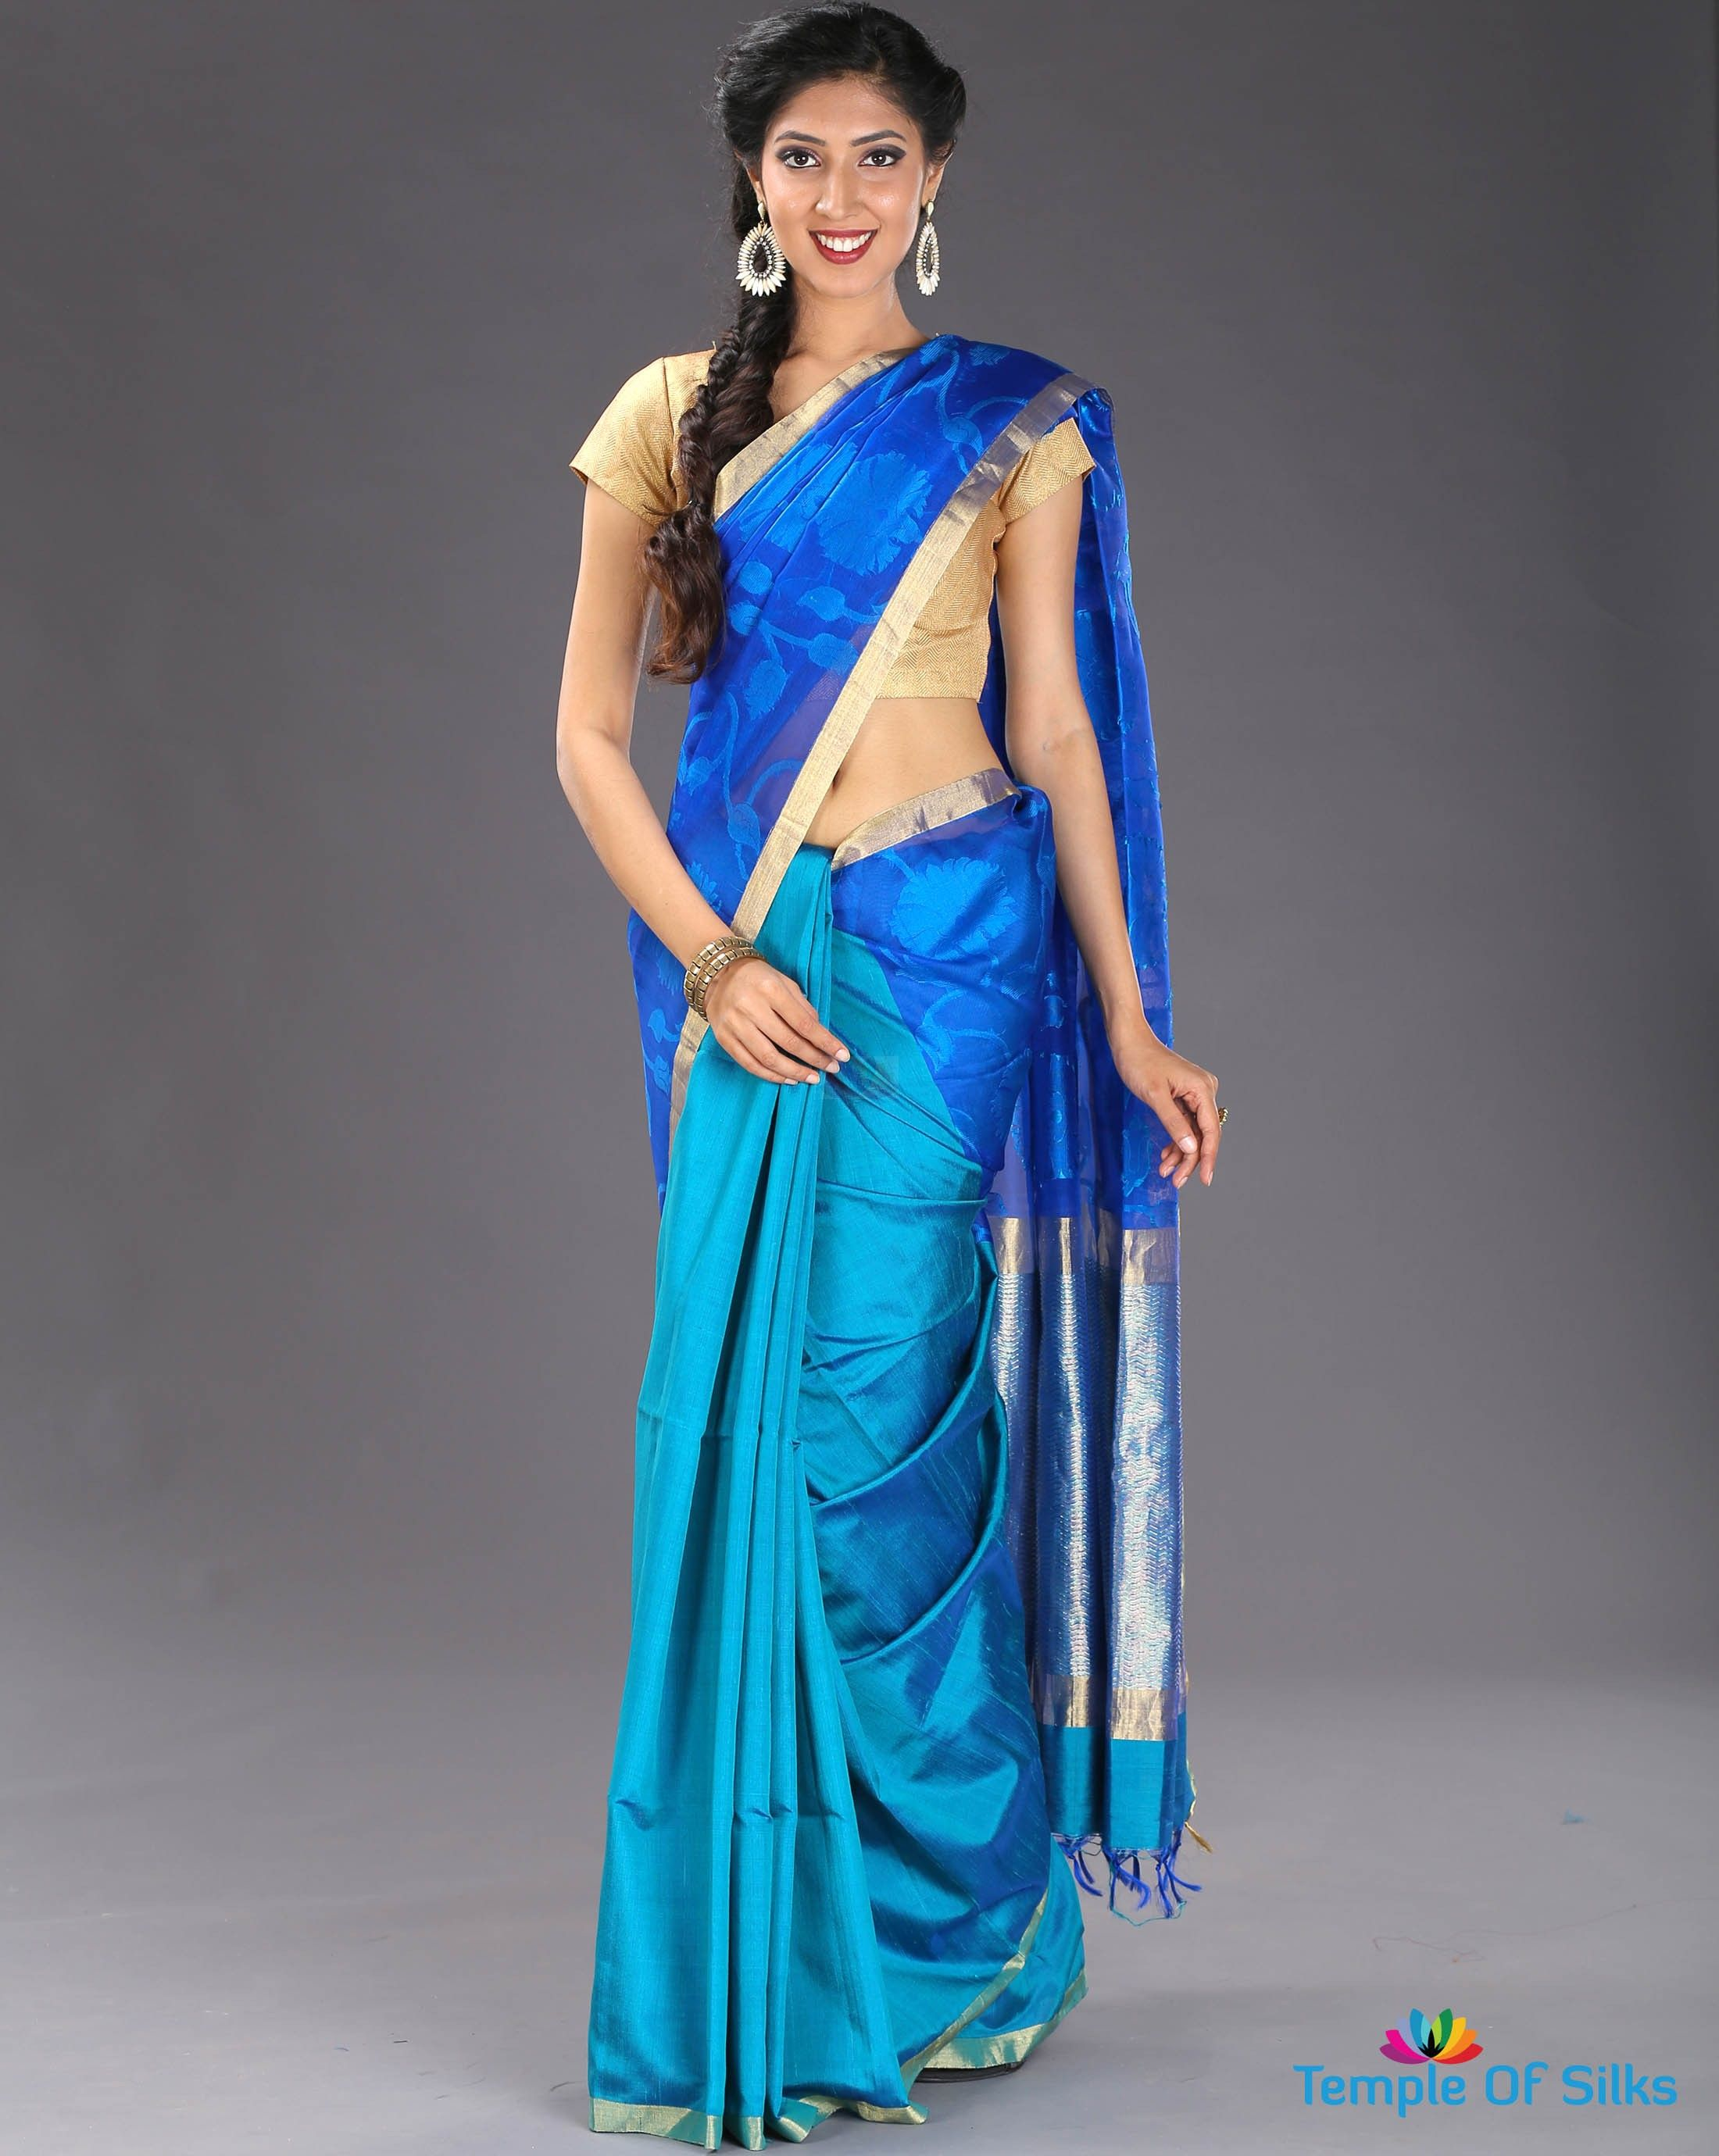 75f7cdfc50 Blue colour semi jute silk saree. Find this Pin and more on Sizzling sarees  ...